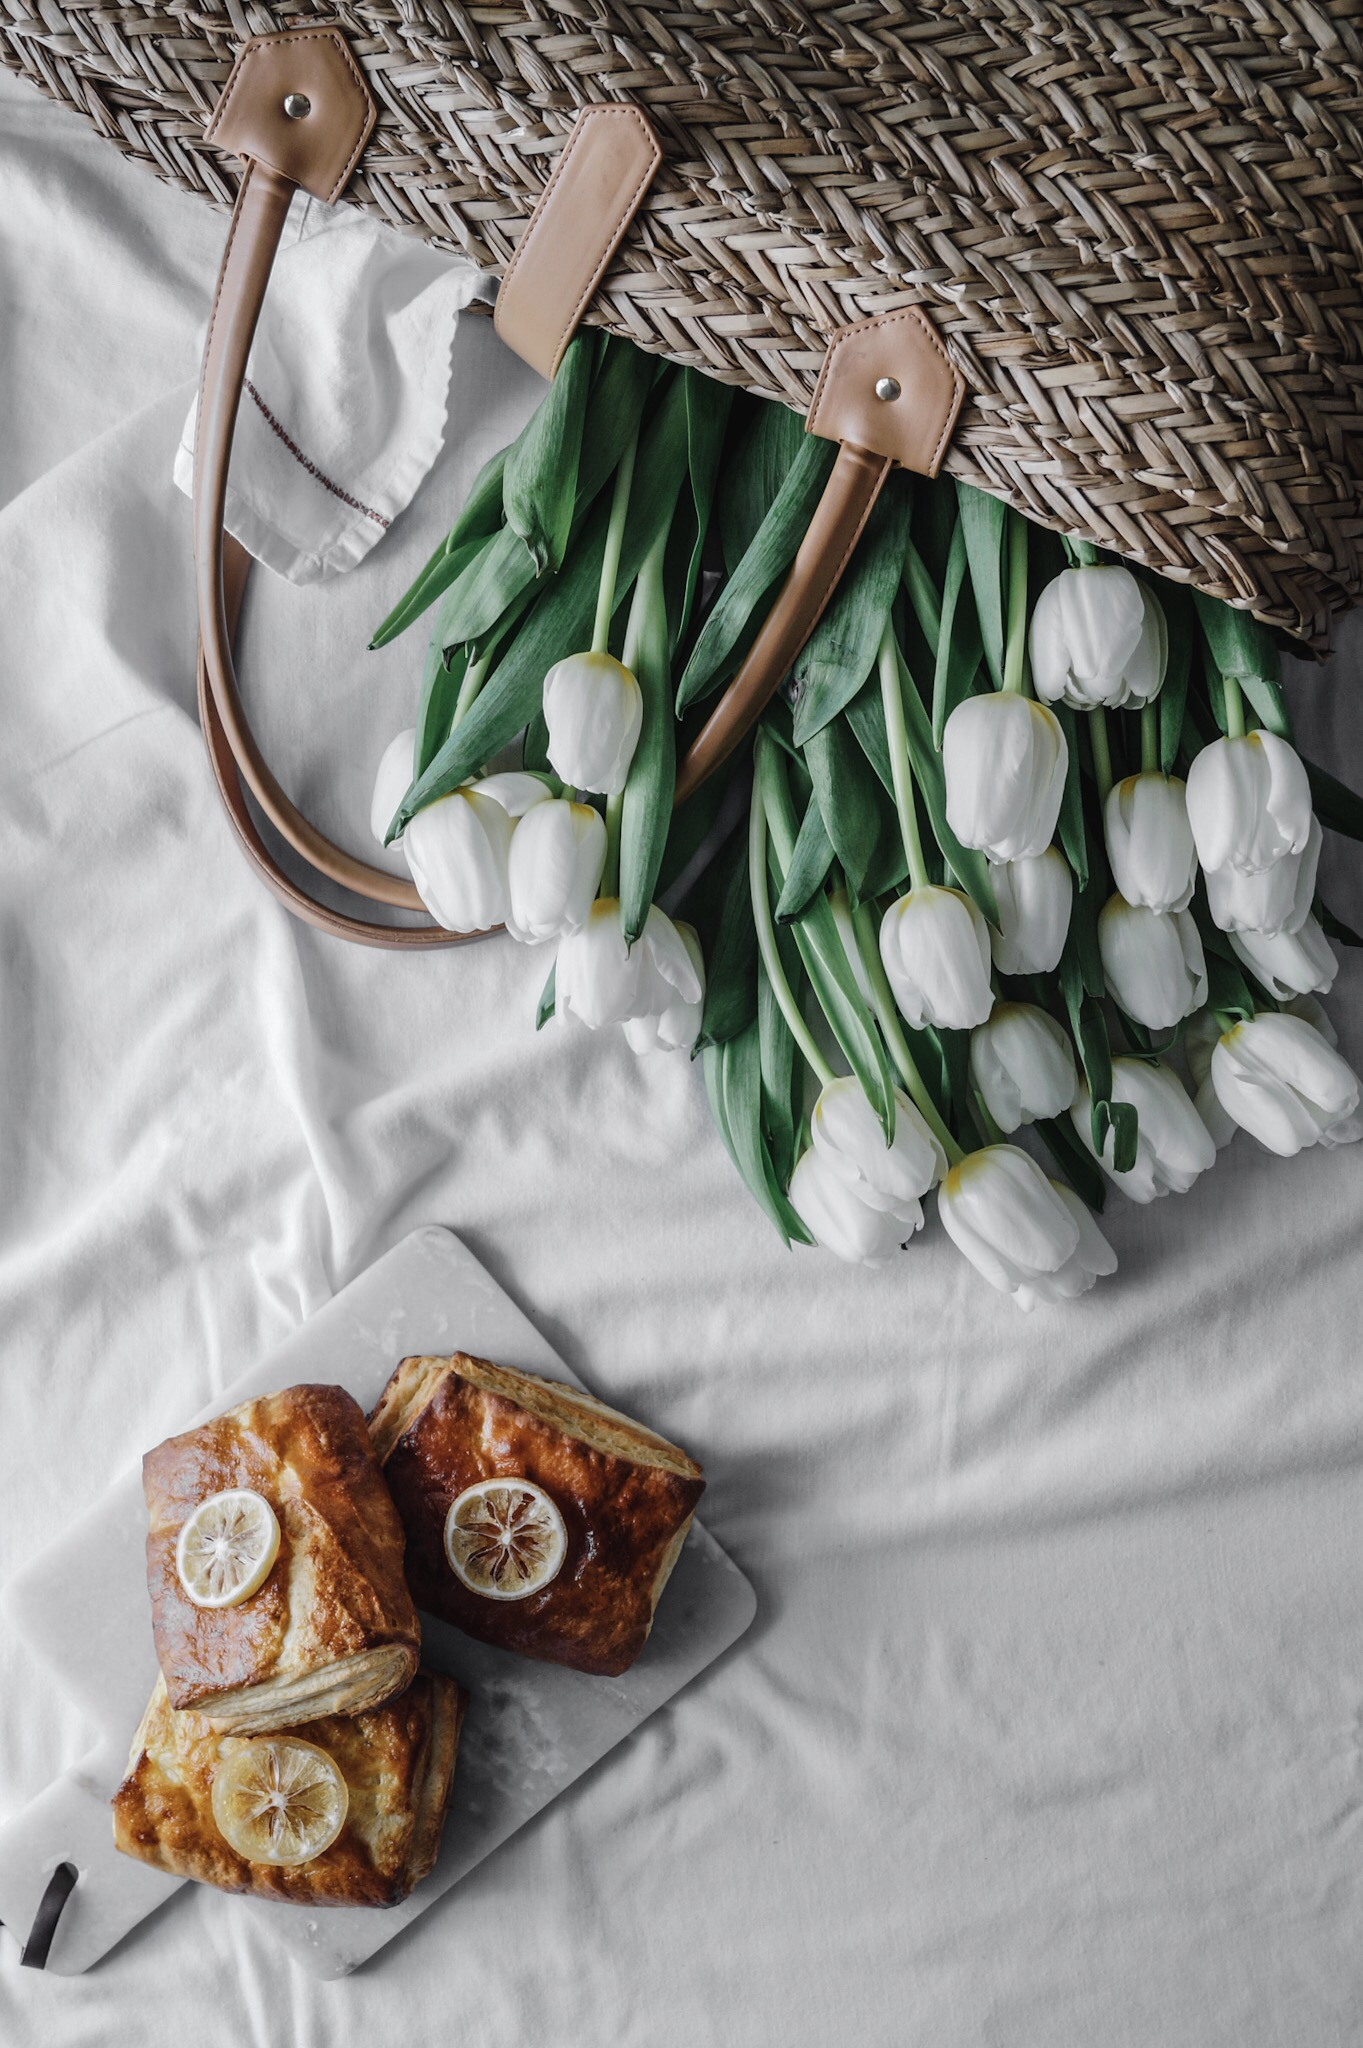 Super bright lemony filling tucked neatly inside the most delicious crispy-flaky Danish pastry. A early spring picnic and a wild story about boys. Spring tulips and an indoor picnic brunch by A Messy Bun Kitchen